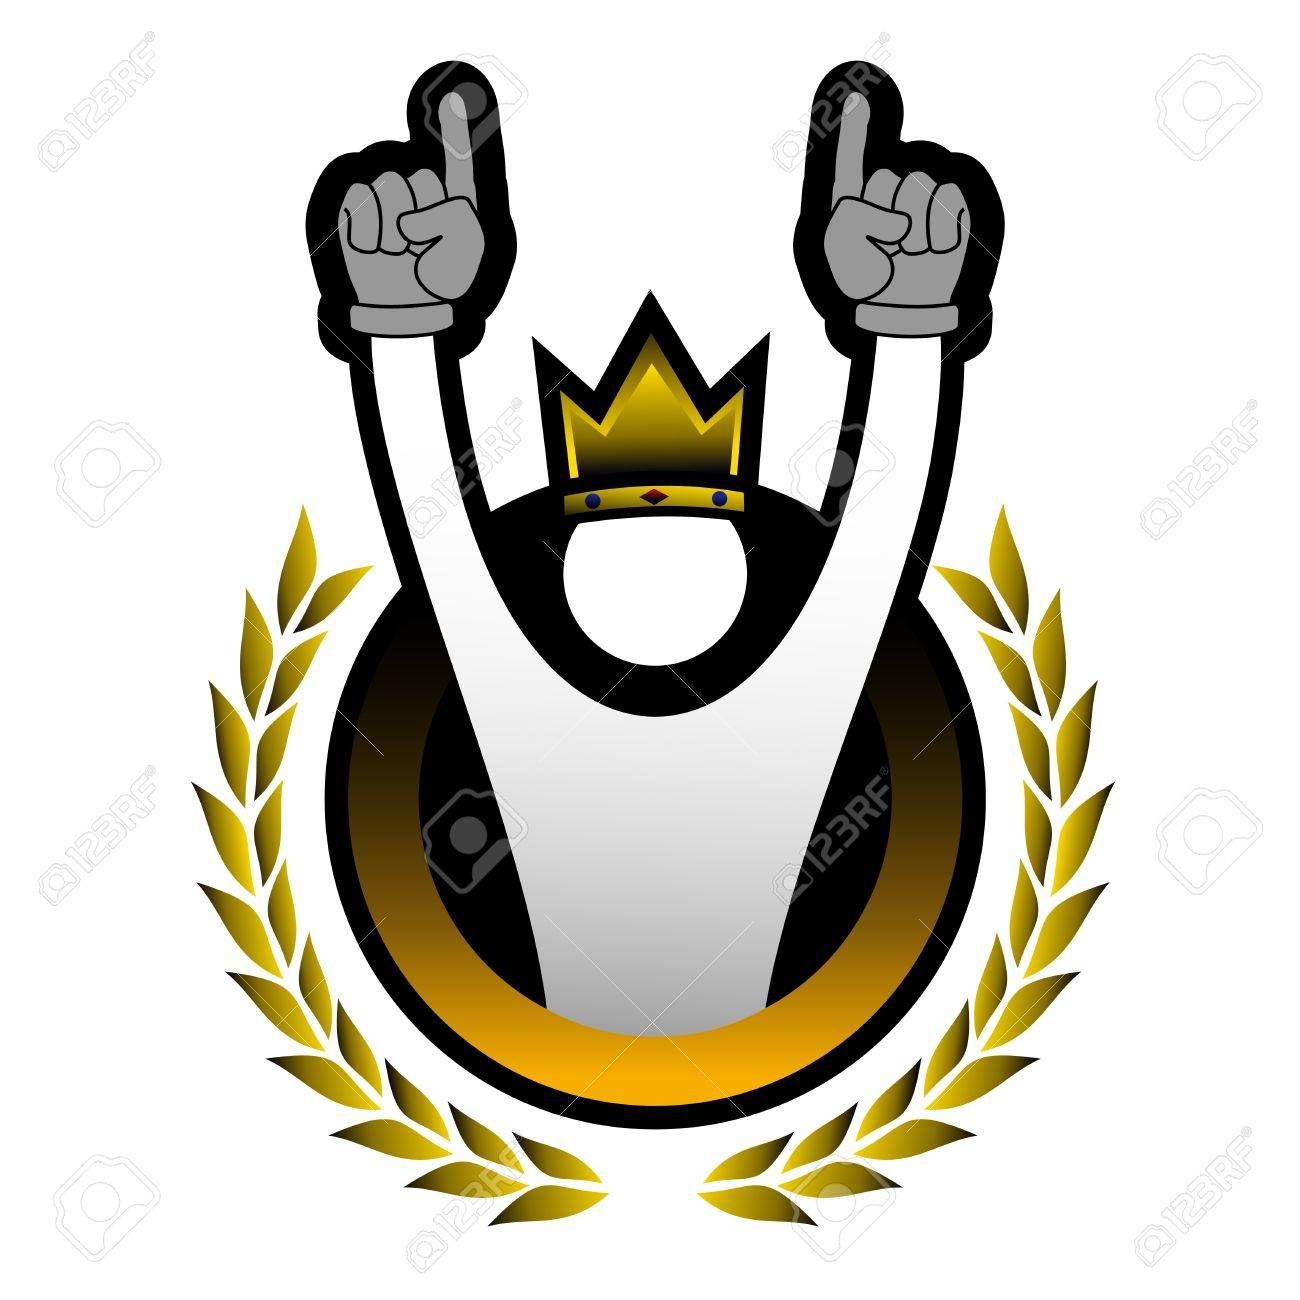 Win puppet icon Stock Vector - 16816342